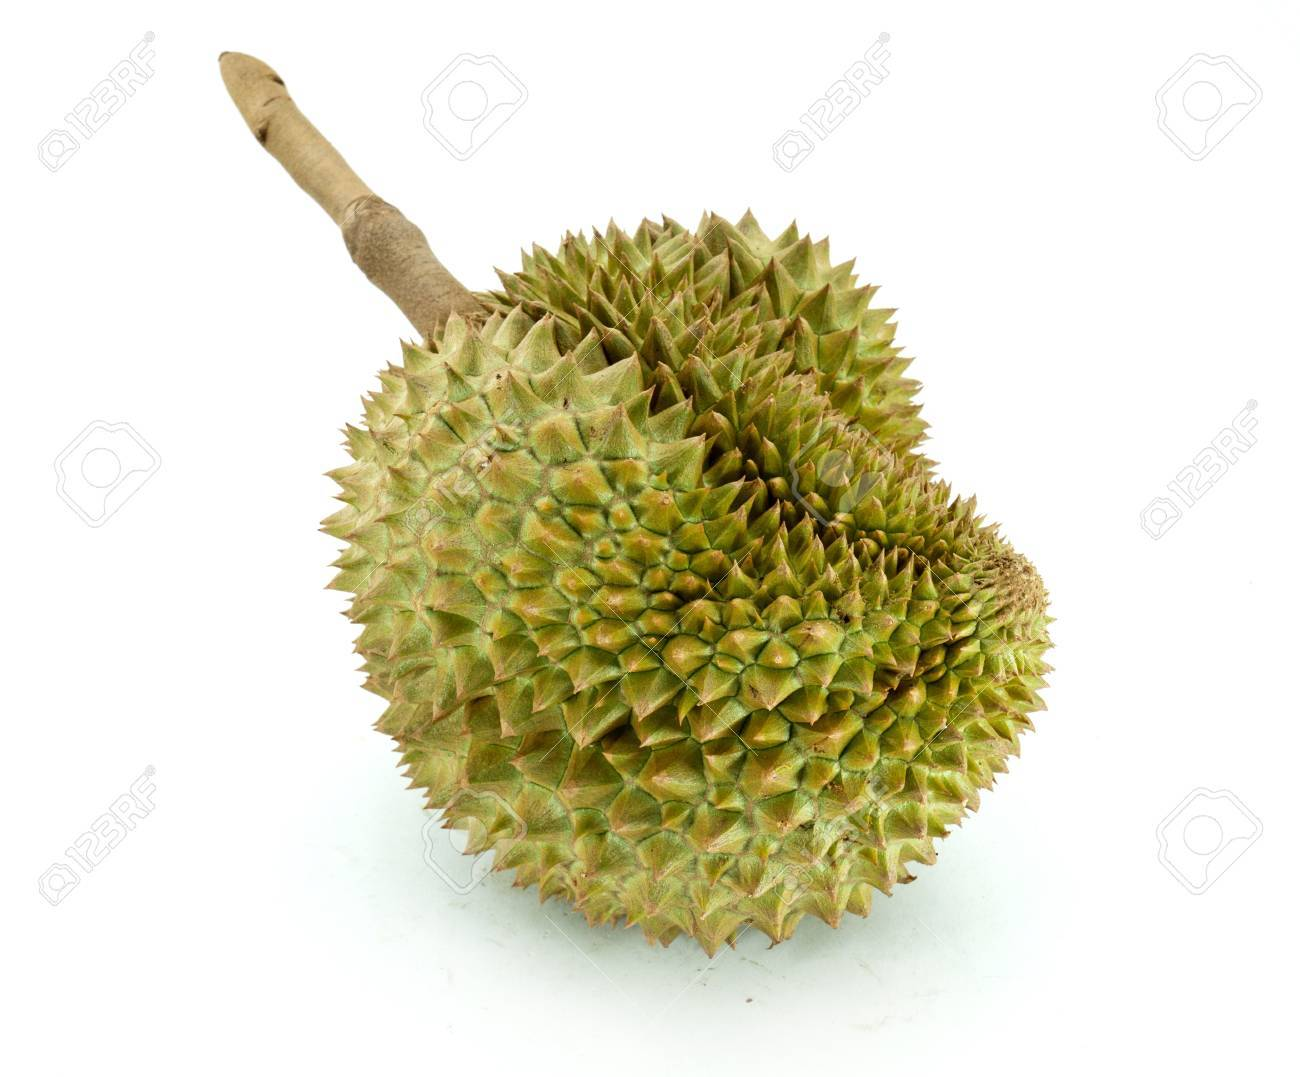 King of fruits, durian on white background Stock Photo - 13291546